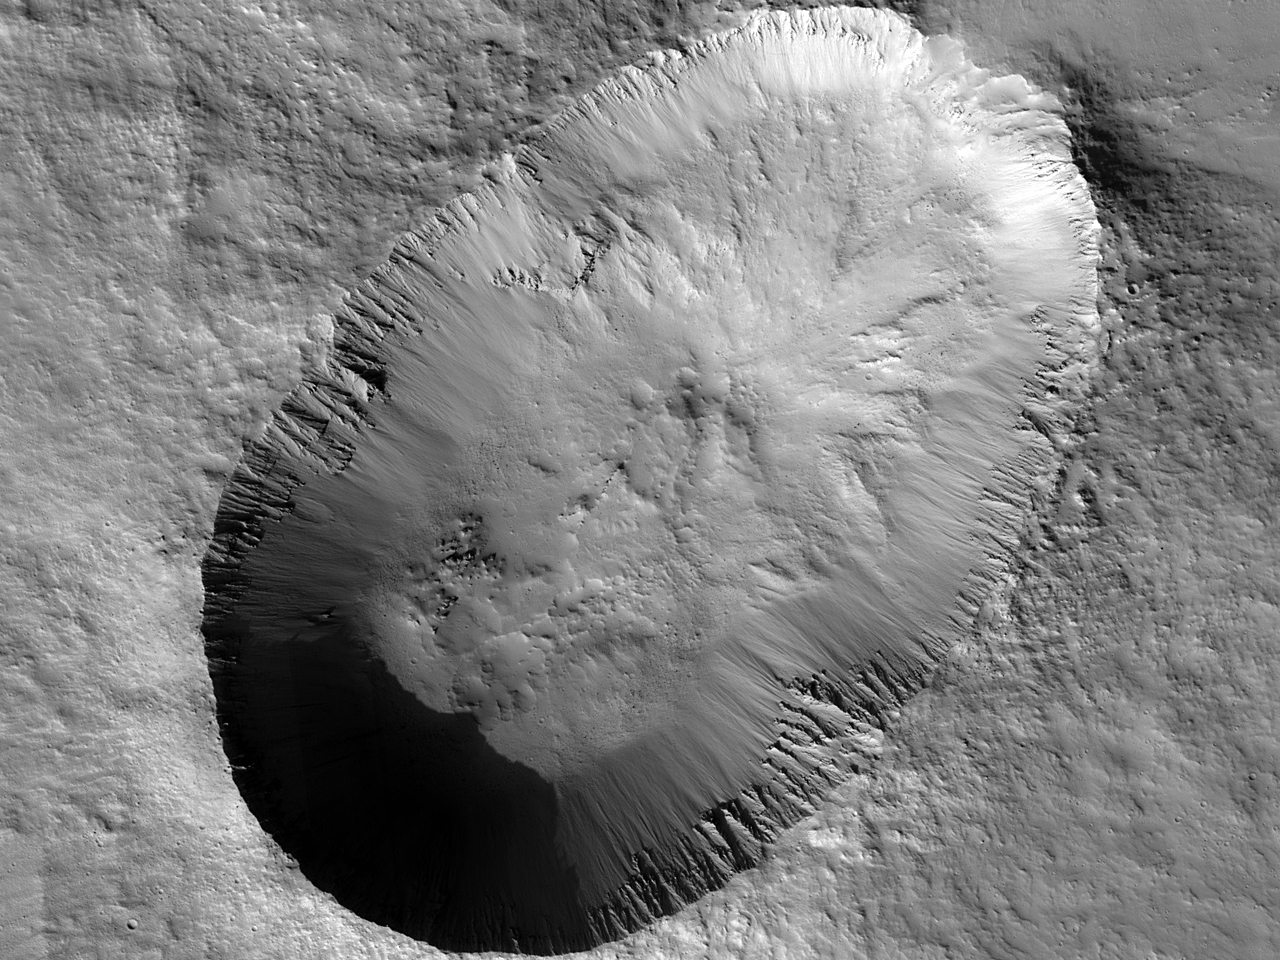 Crater extensus in Fossis Cyanes